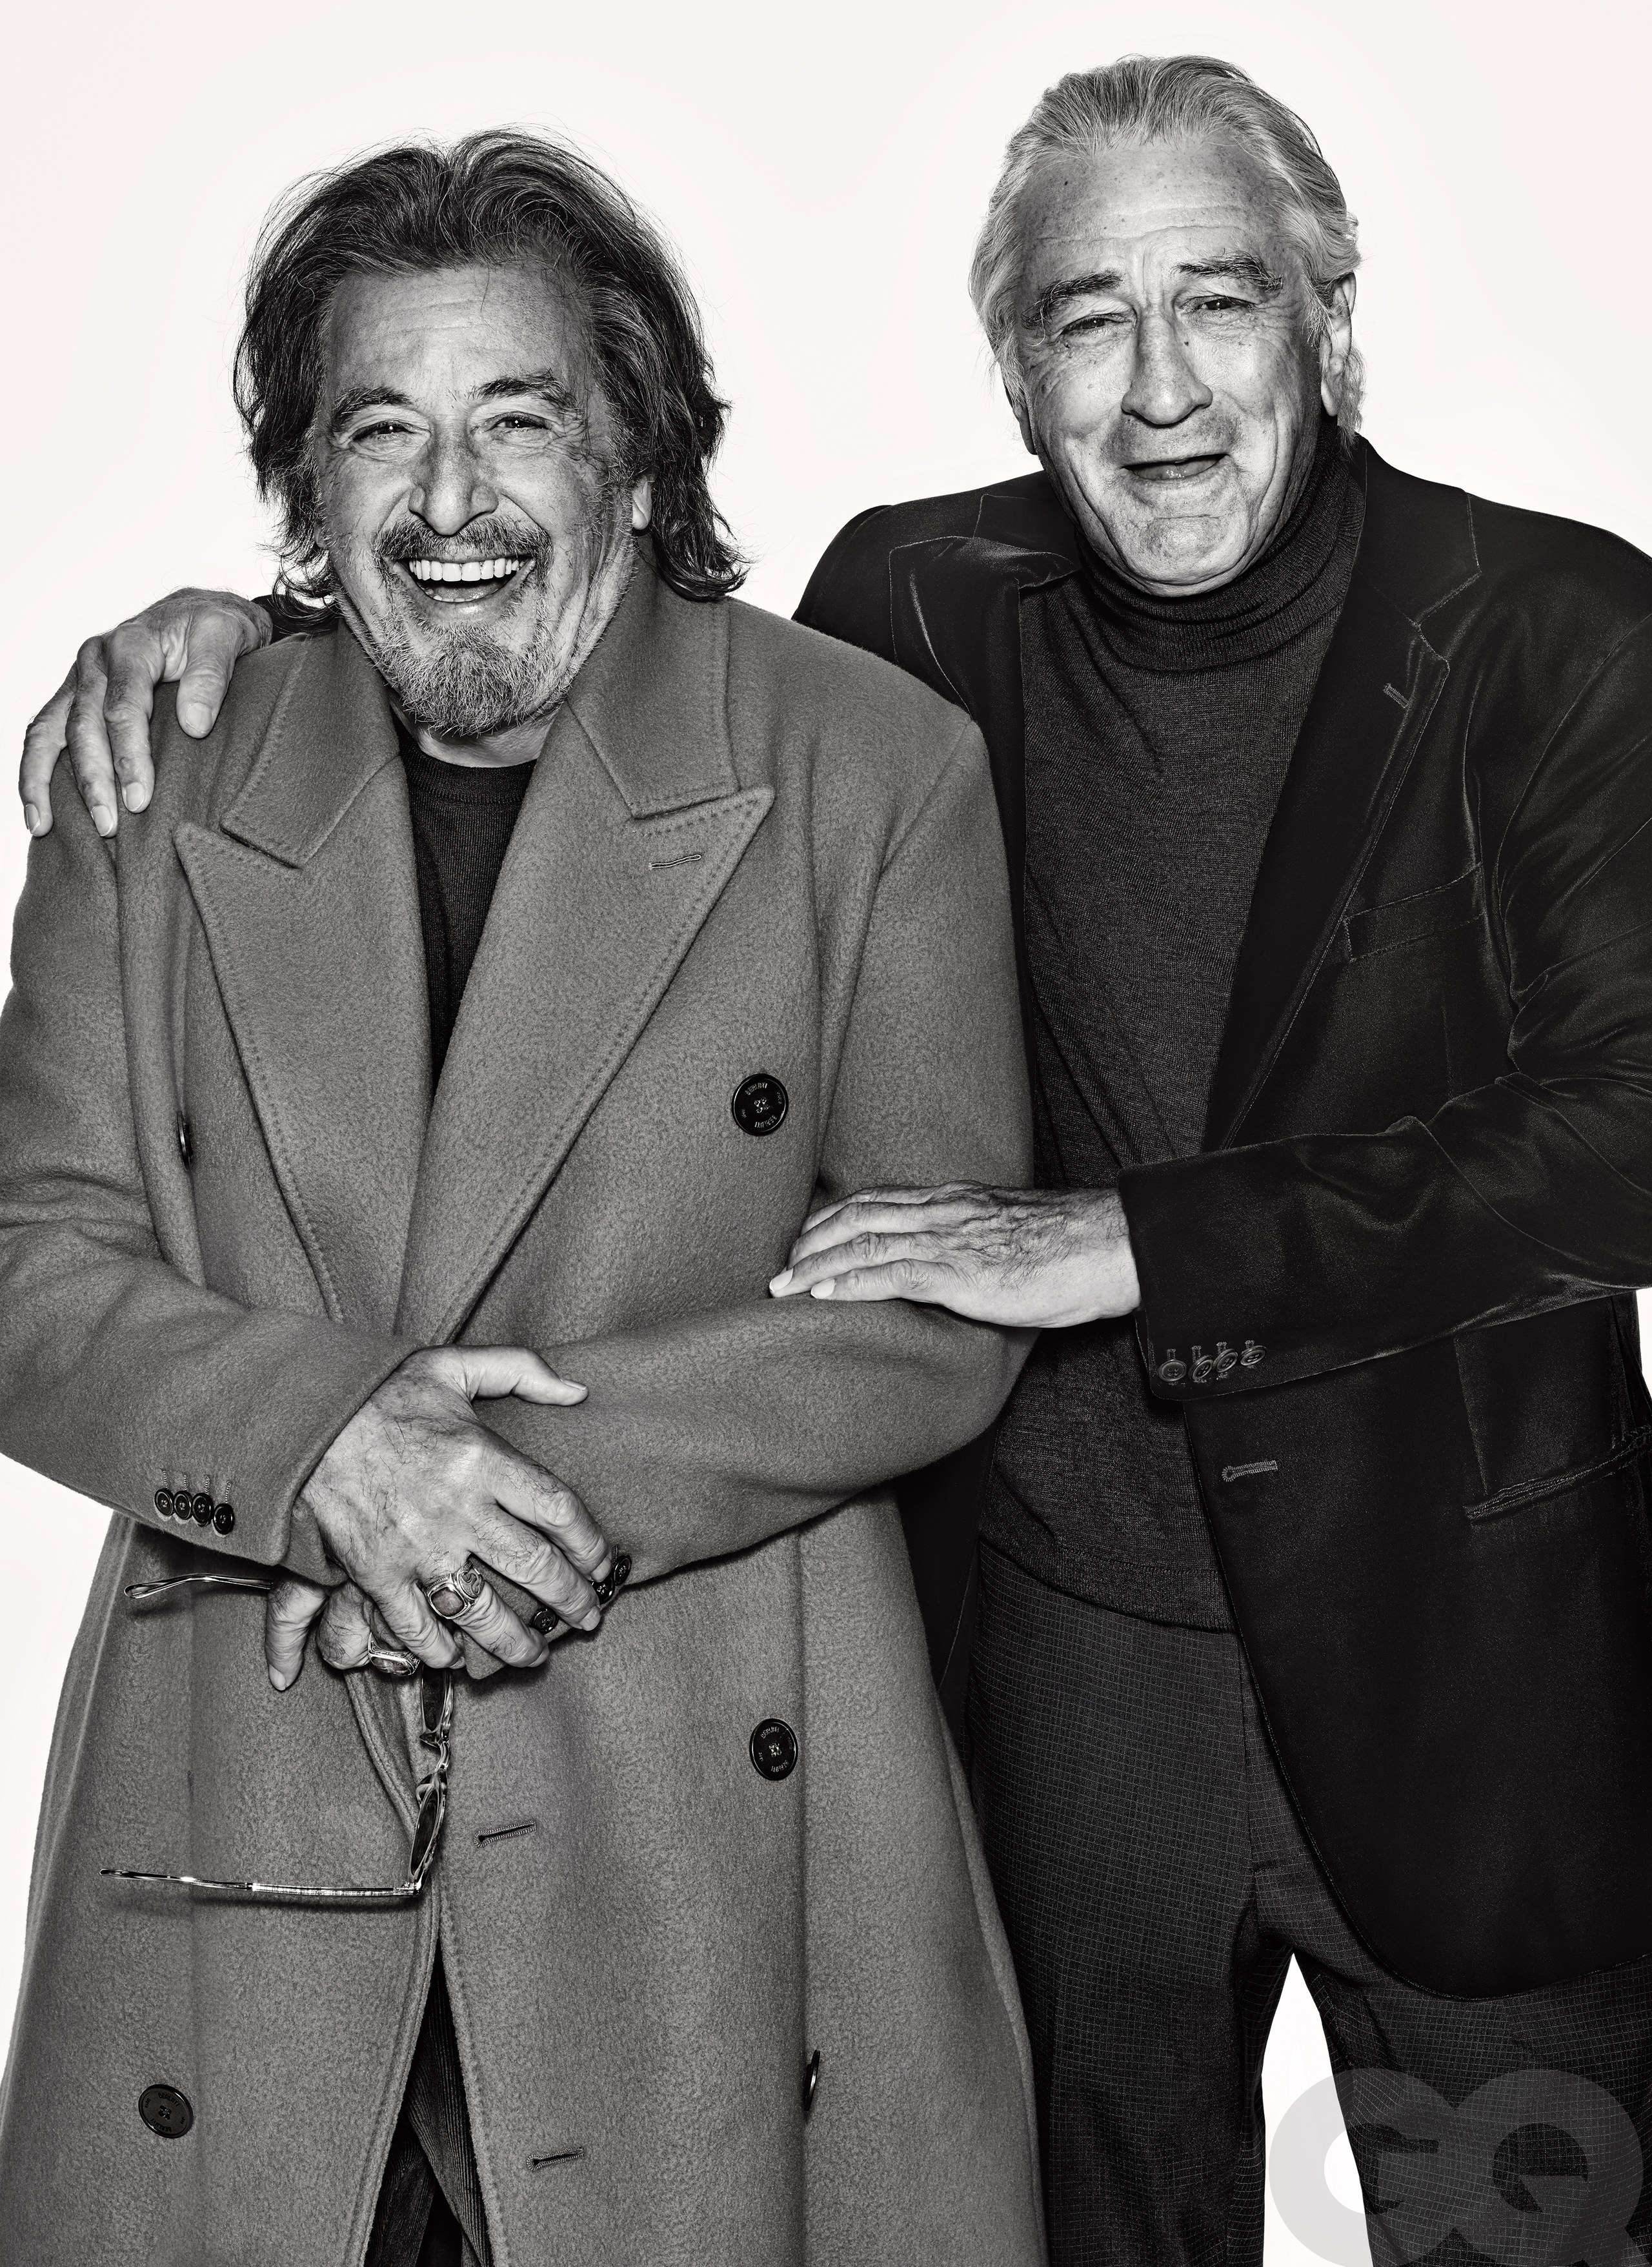 al-pacino-robert-de-niro-gq-men-of-the-year-03-lede